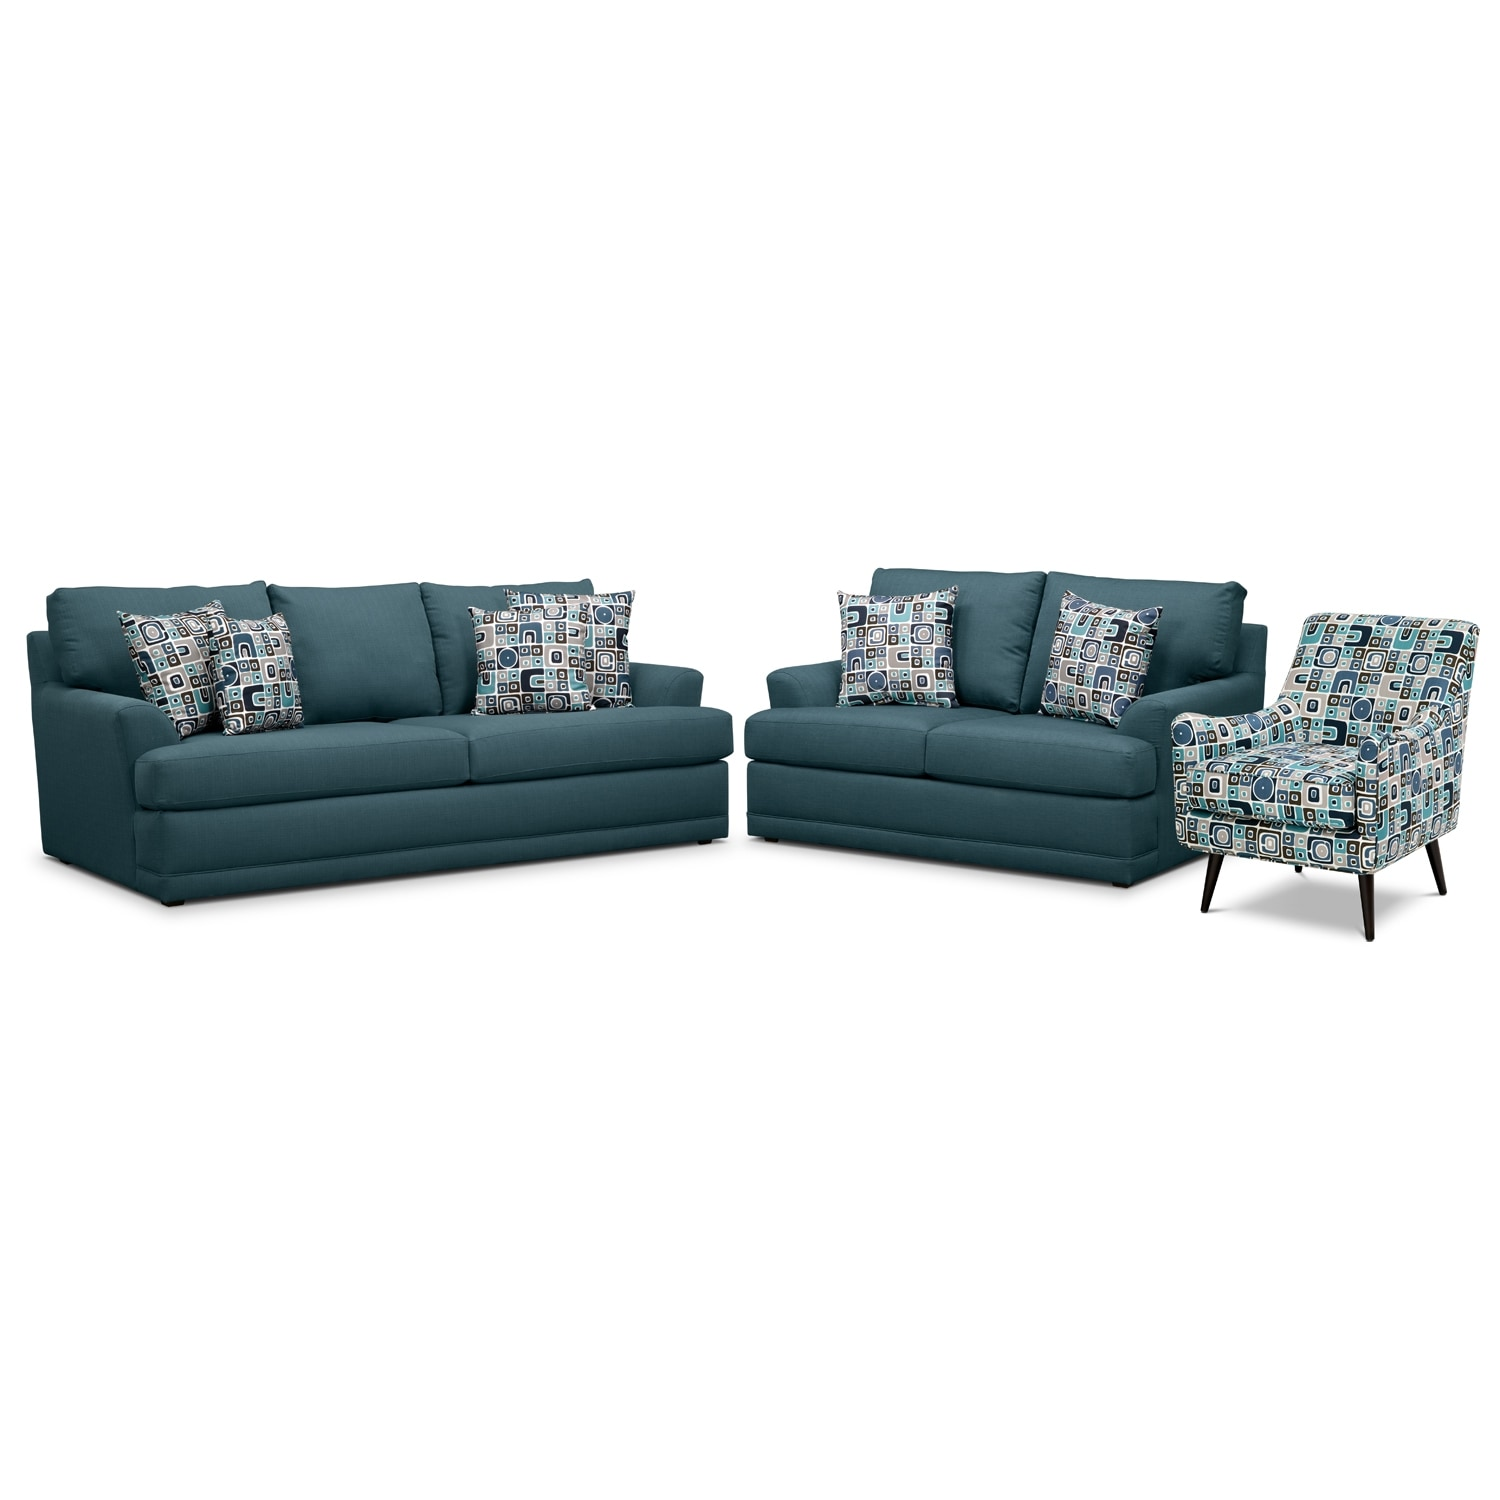 [Kismet 3 Pc. Living Room w/ Accent Chair]